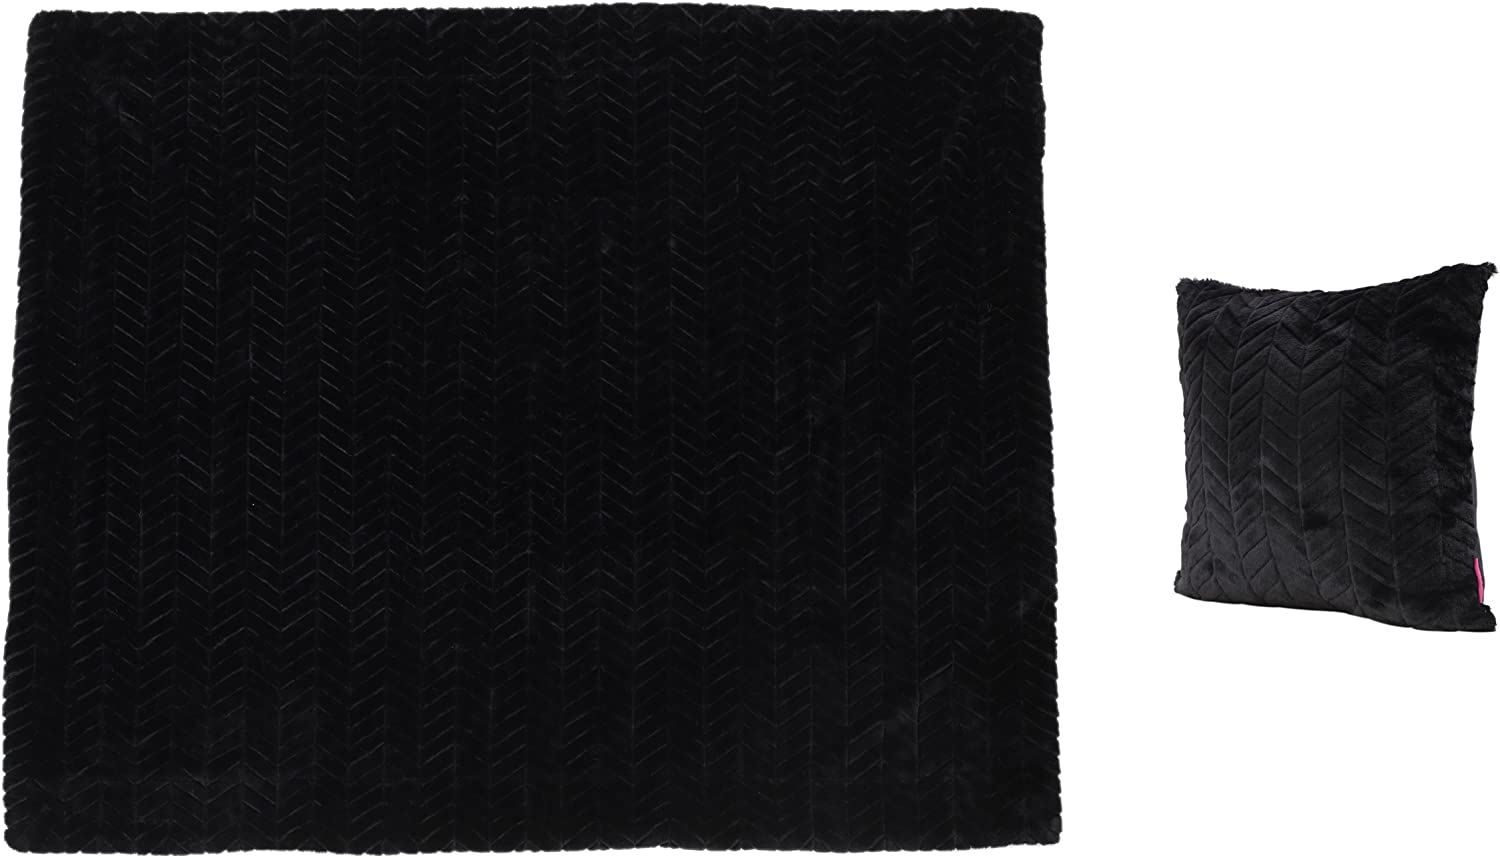 Christopher Knight Home Toscana Faux Furry Pillow and Throw Blanket Combo, 2-Pcs Set, Black